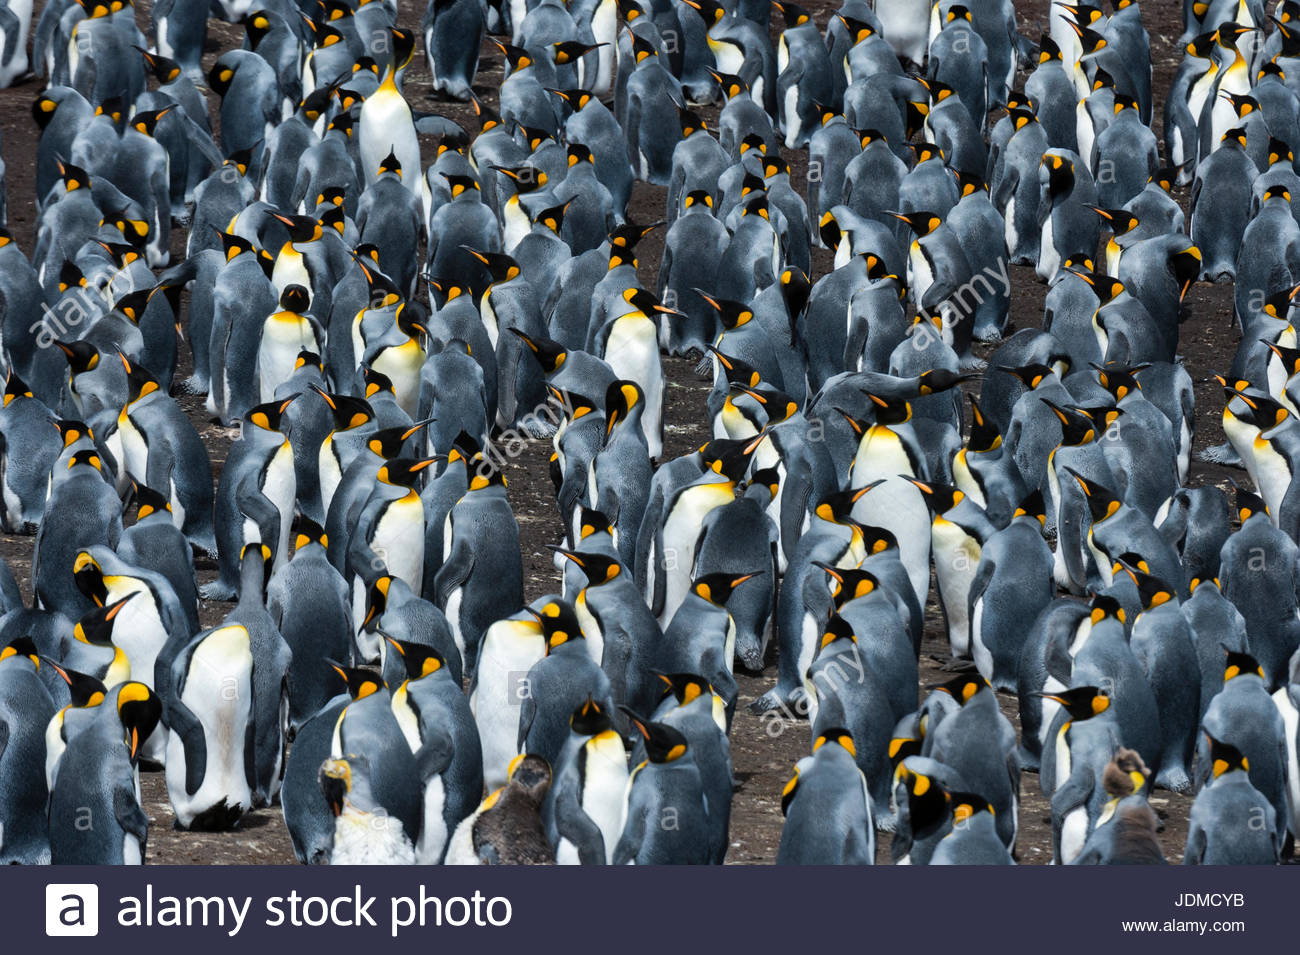 A king penguin colony, Aptenodytes patagonica. - Stock Image